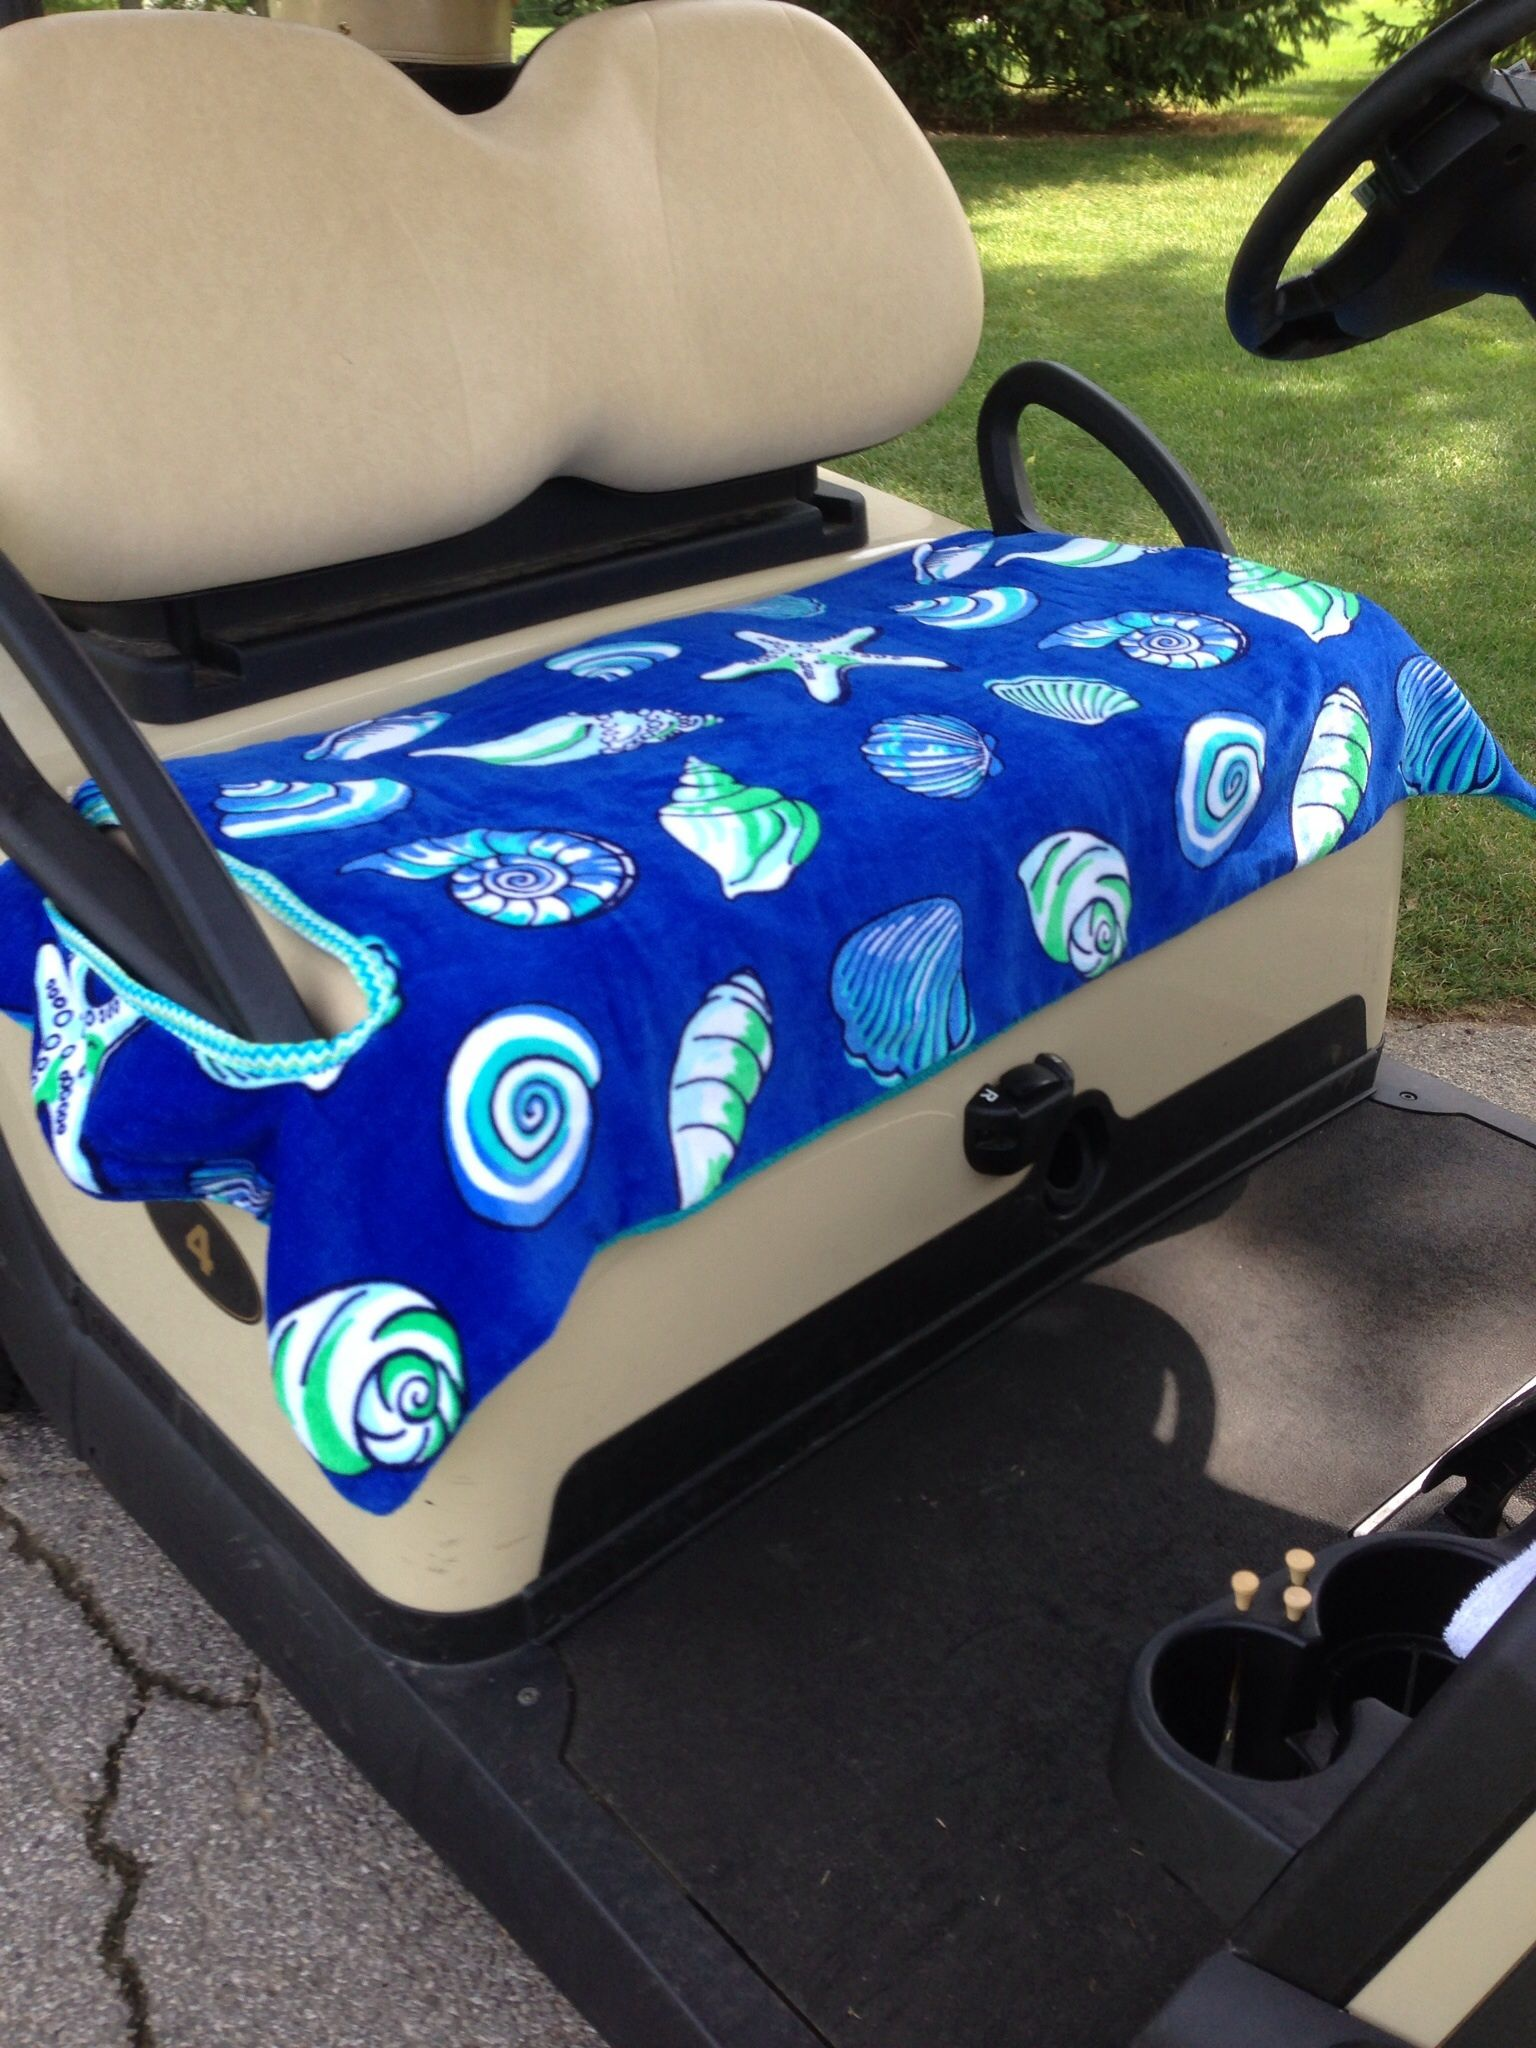 Theres nothing worse than a scorching hot golf car seat except theres nothing worse than a scorching hot golf car seat except a freezing cold one heres sewing instructions to make a golf car seat cover of jeuxipadfo Choice Image